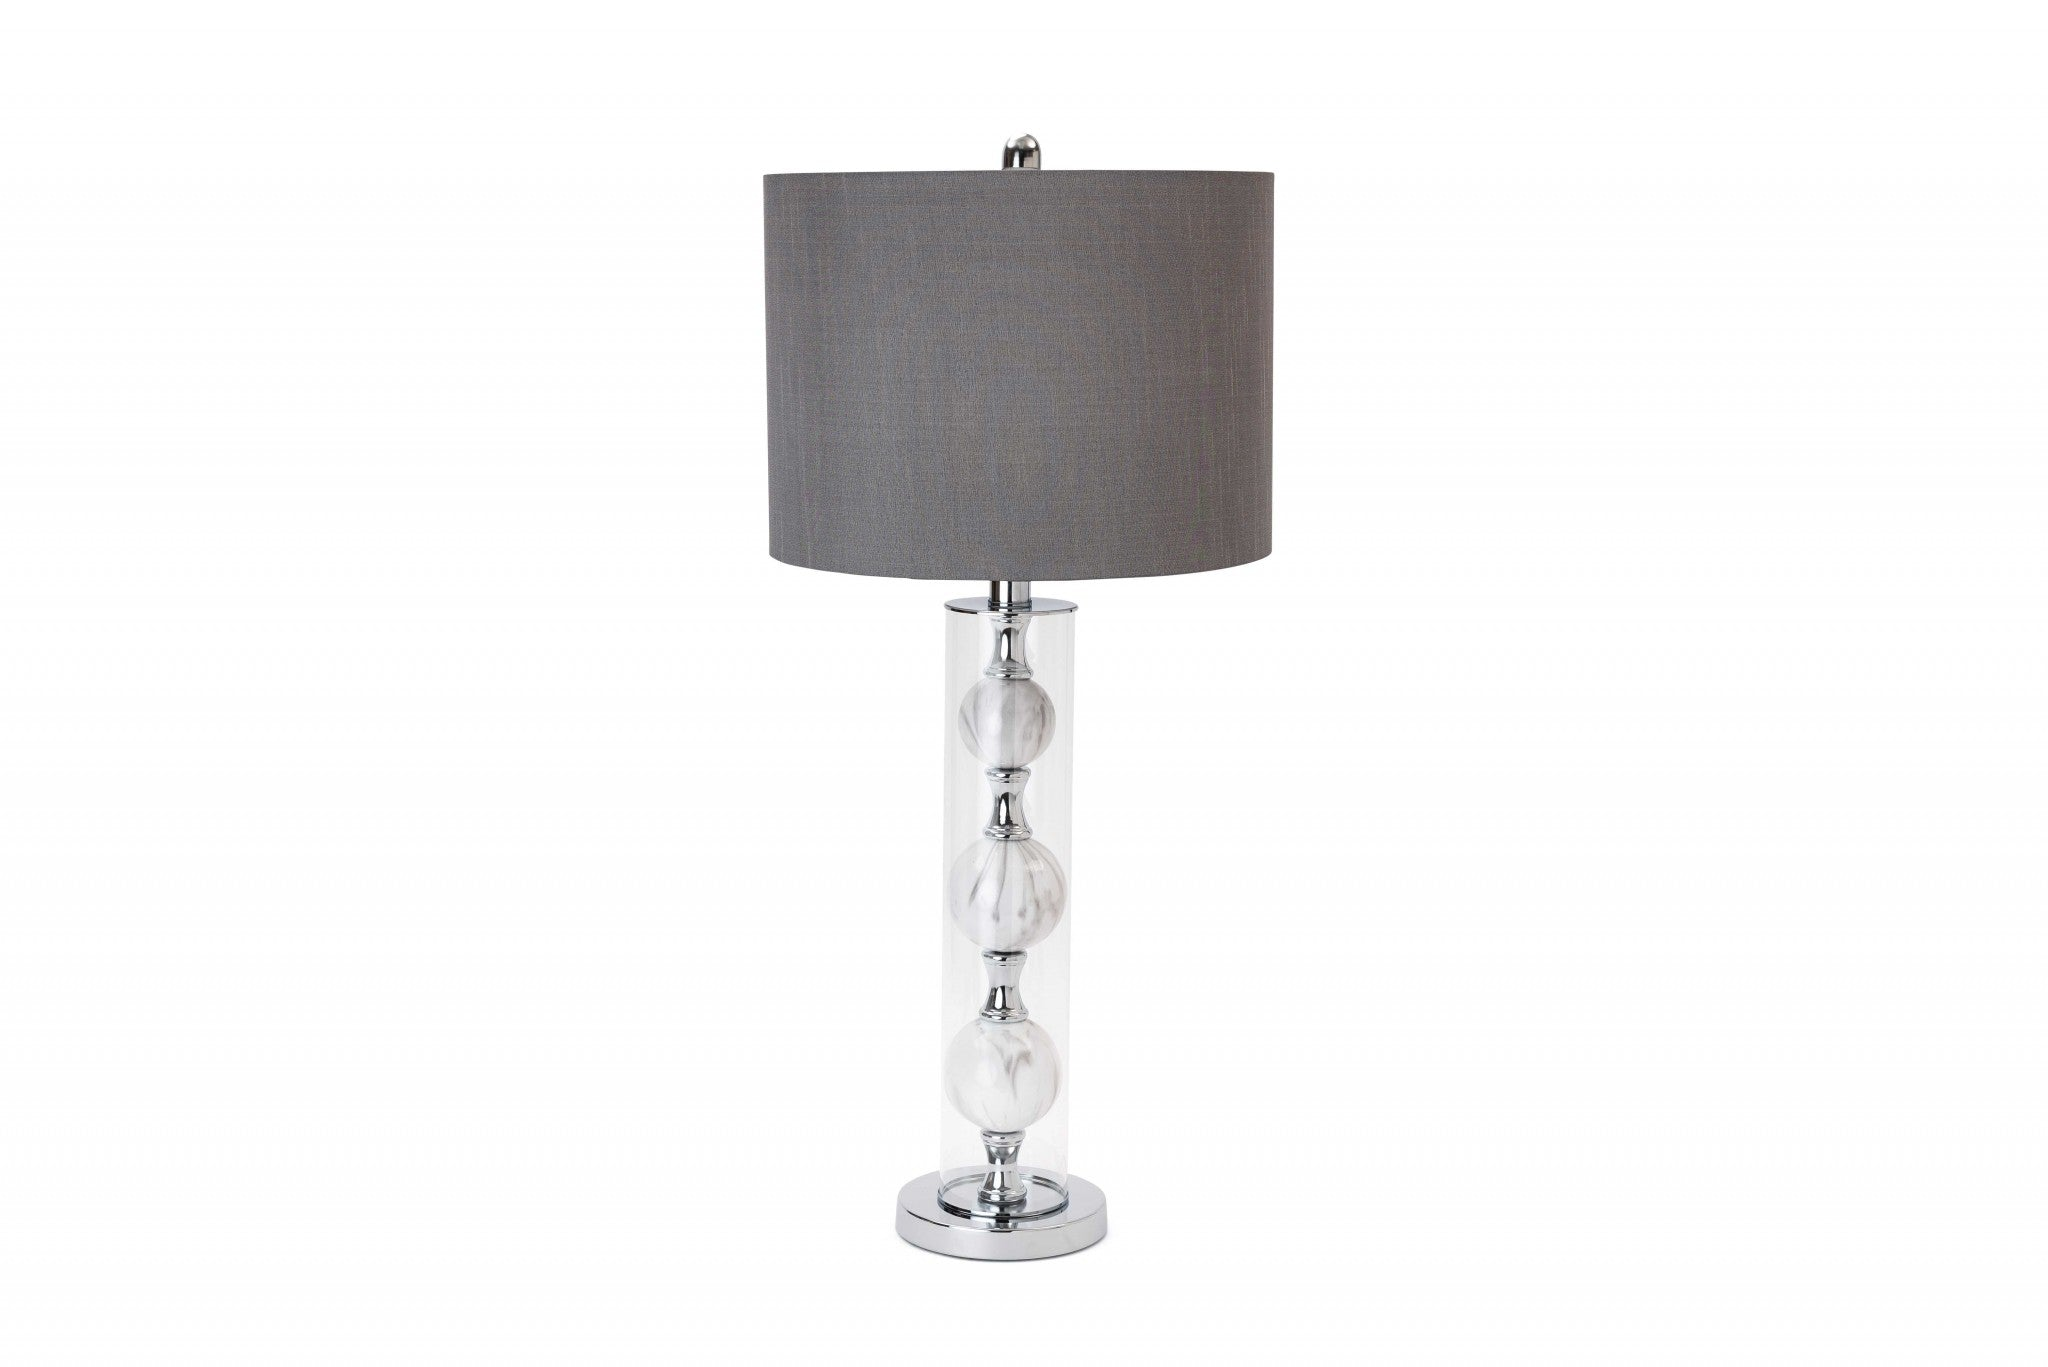 Set of 2 Metal 3-Ball Glass Table Lamp